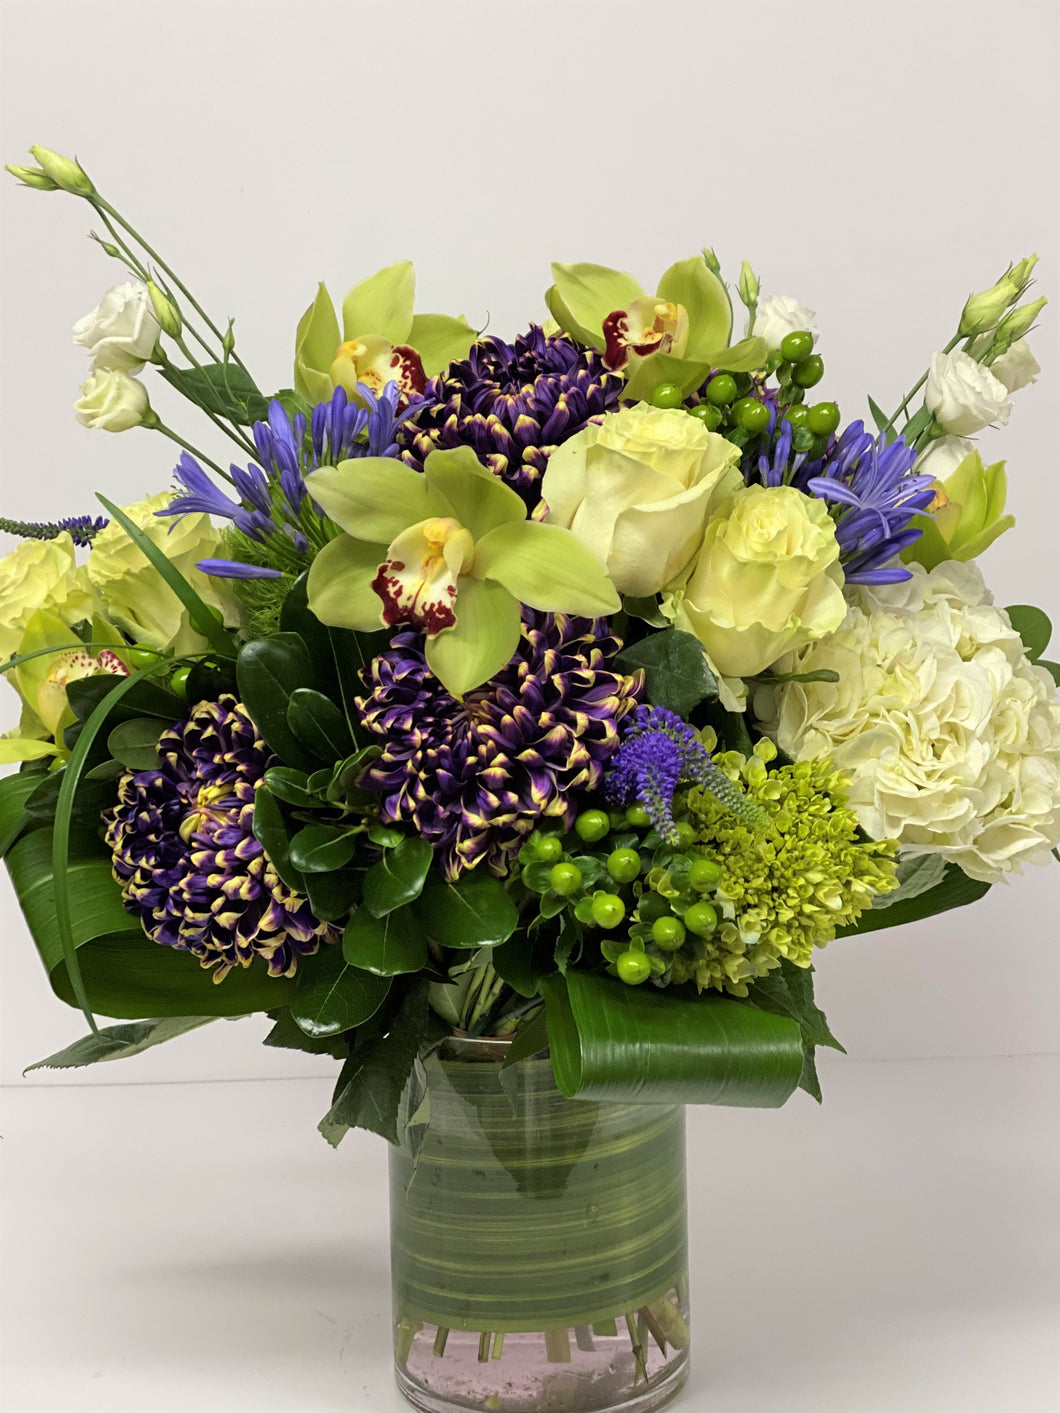 FNV36 - White and Purple Vase Arrangement - Flowerplustoronto